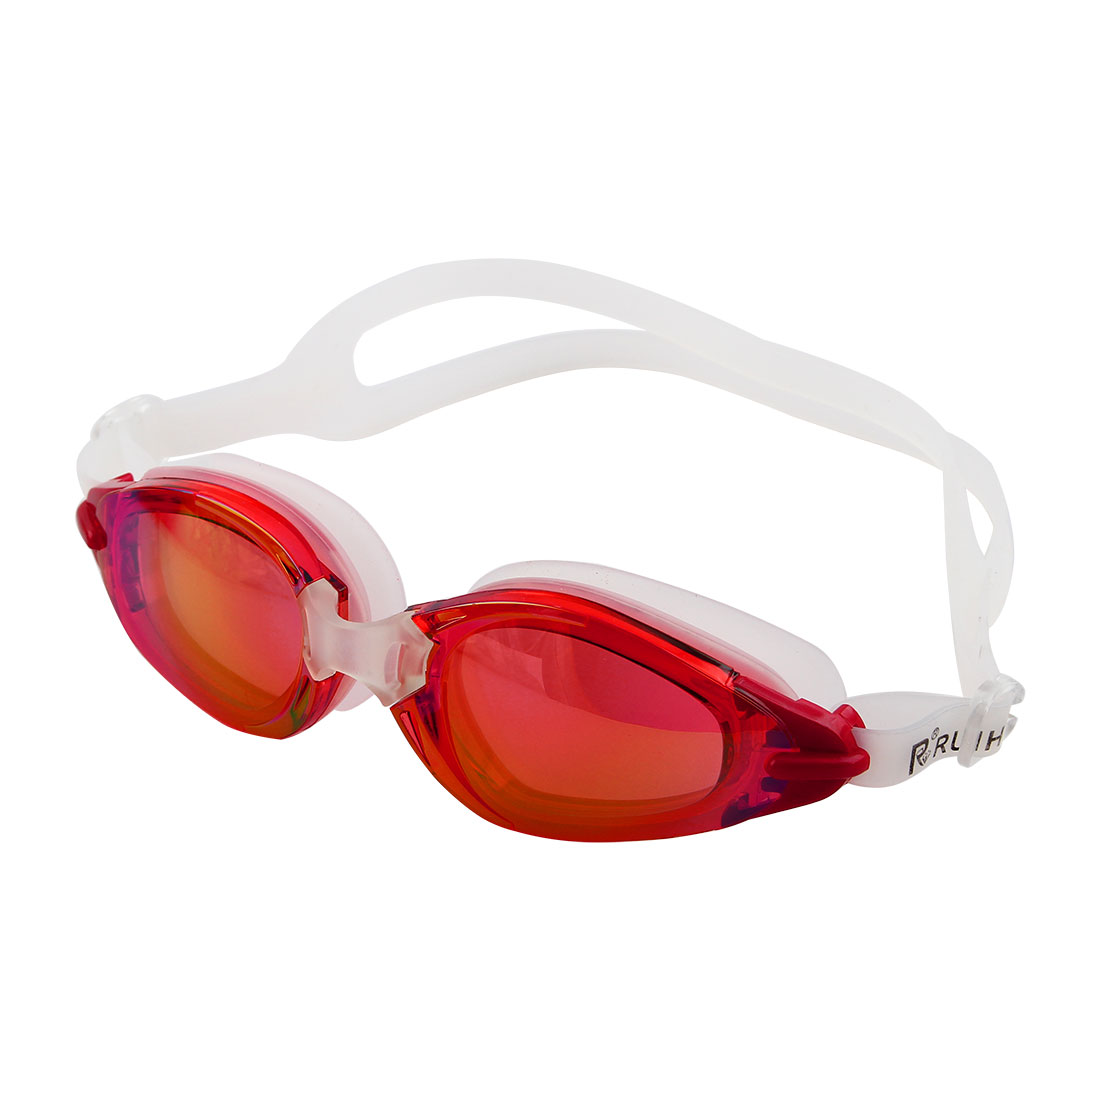 Silicone Adjustable Belt Clear Vision Anti Fog Swim Glasses Swimming Goggles Red w Storage Case for Men Women